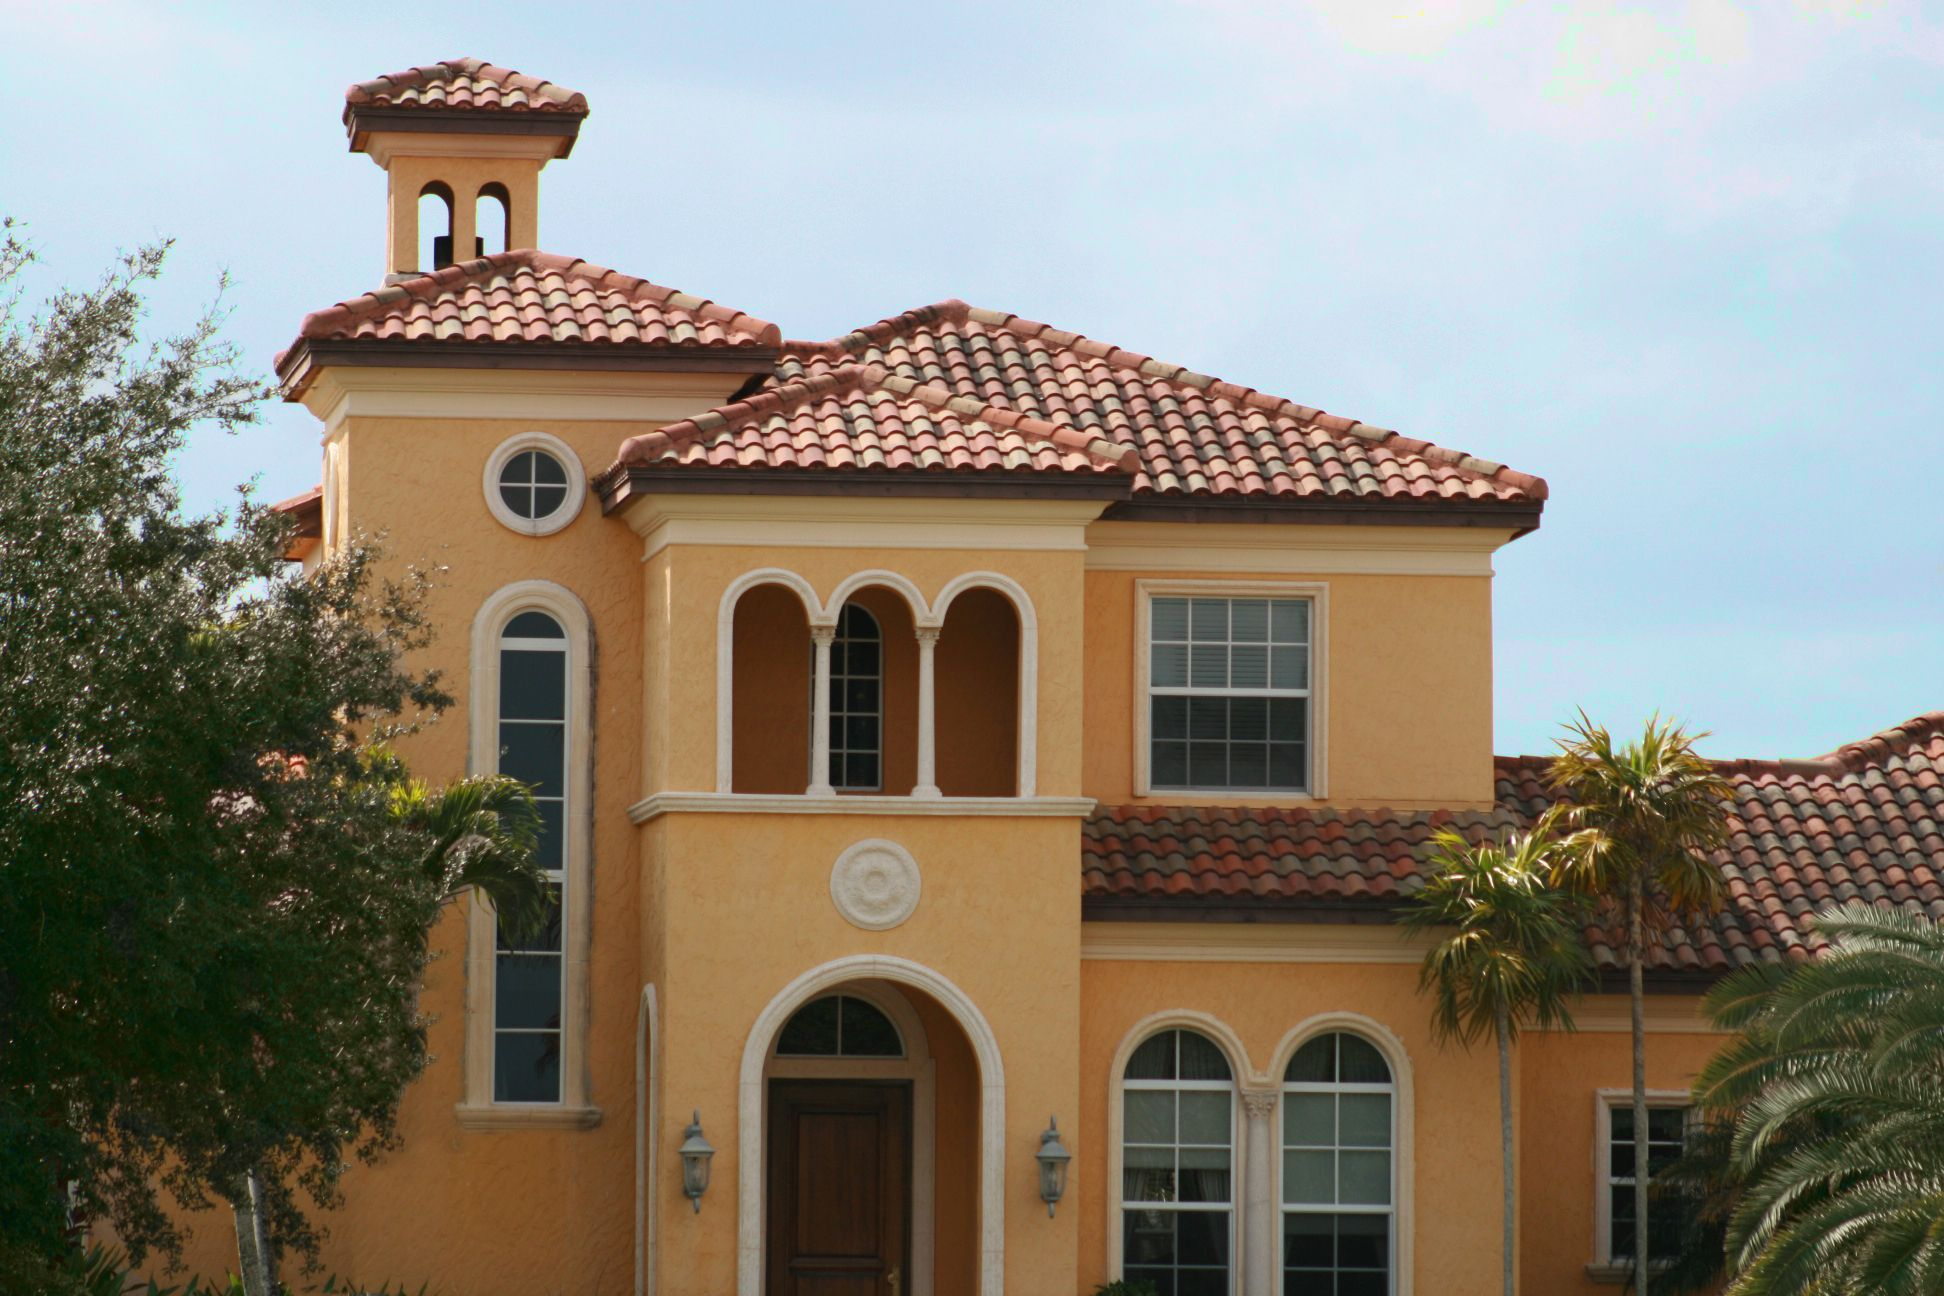 Spanish Style Home with Tile Roof